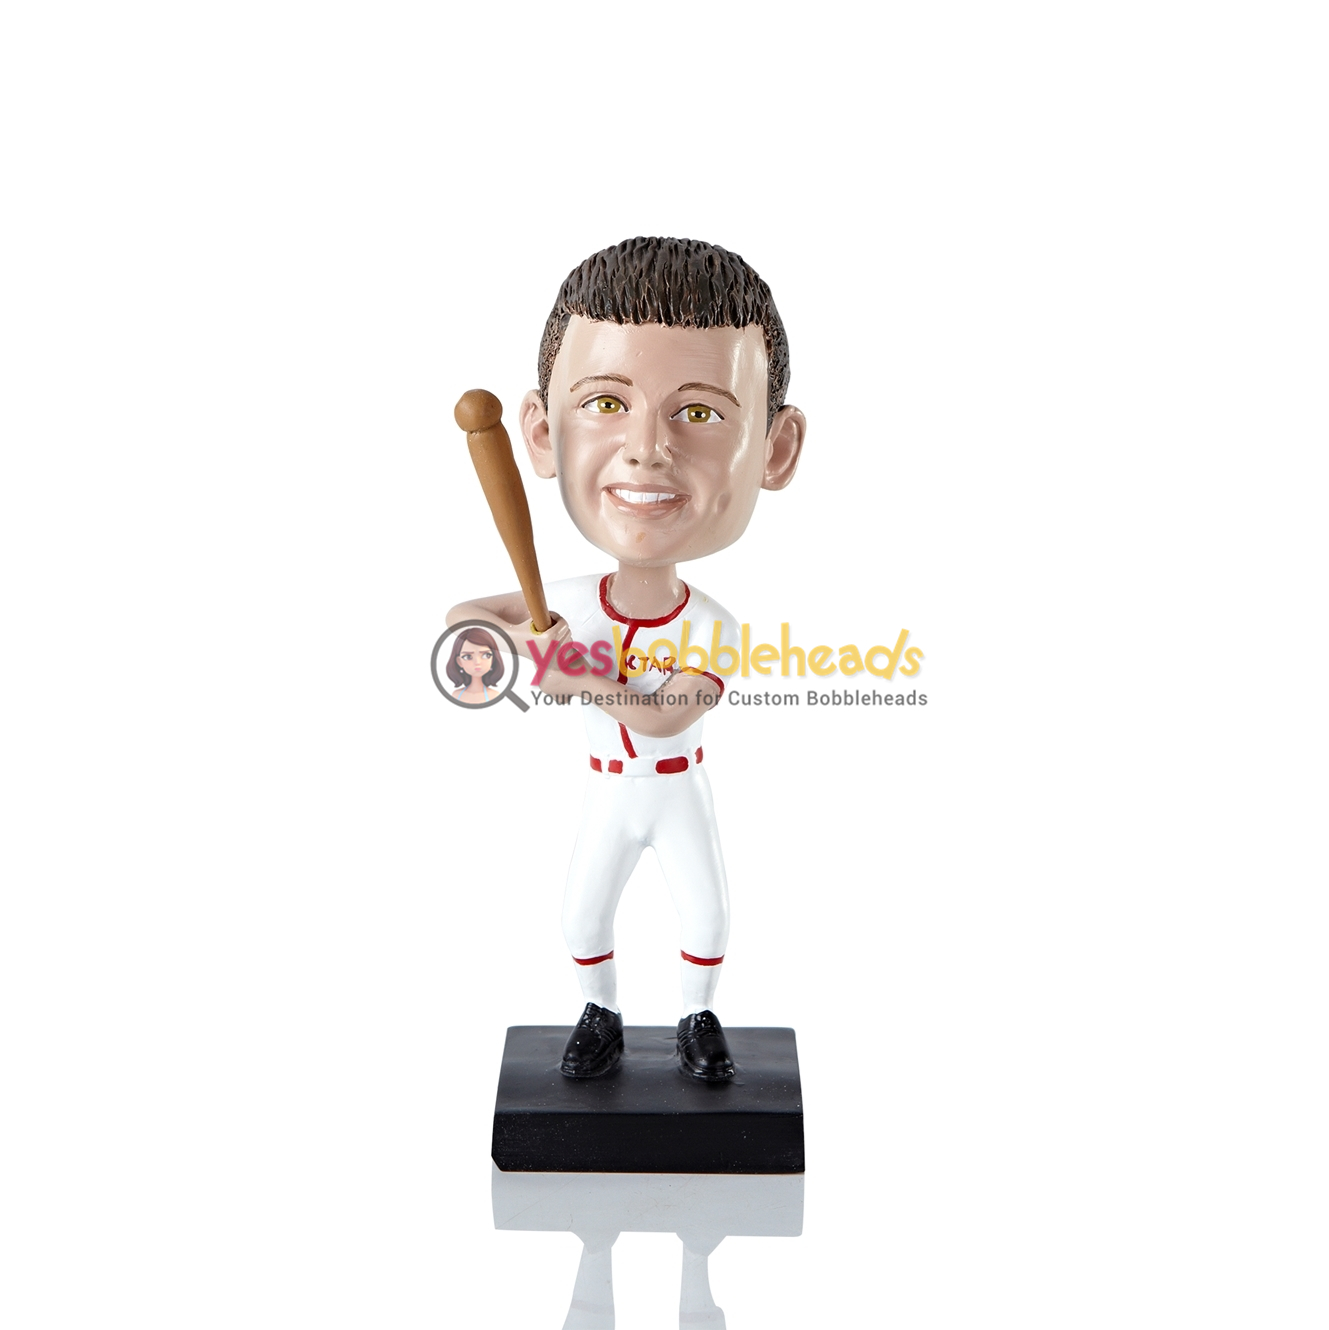 Picture of Custom Bobblehead Doll: Boy Baseball Player